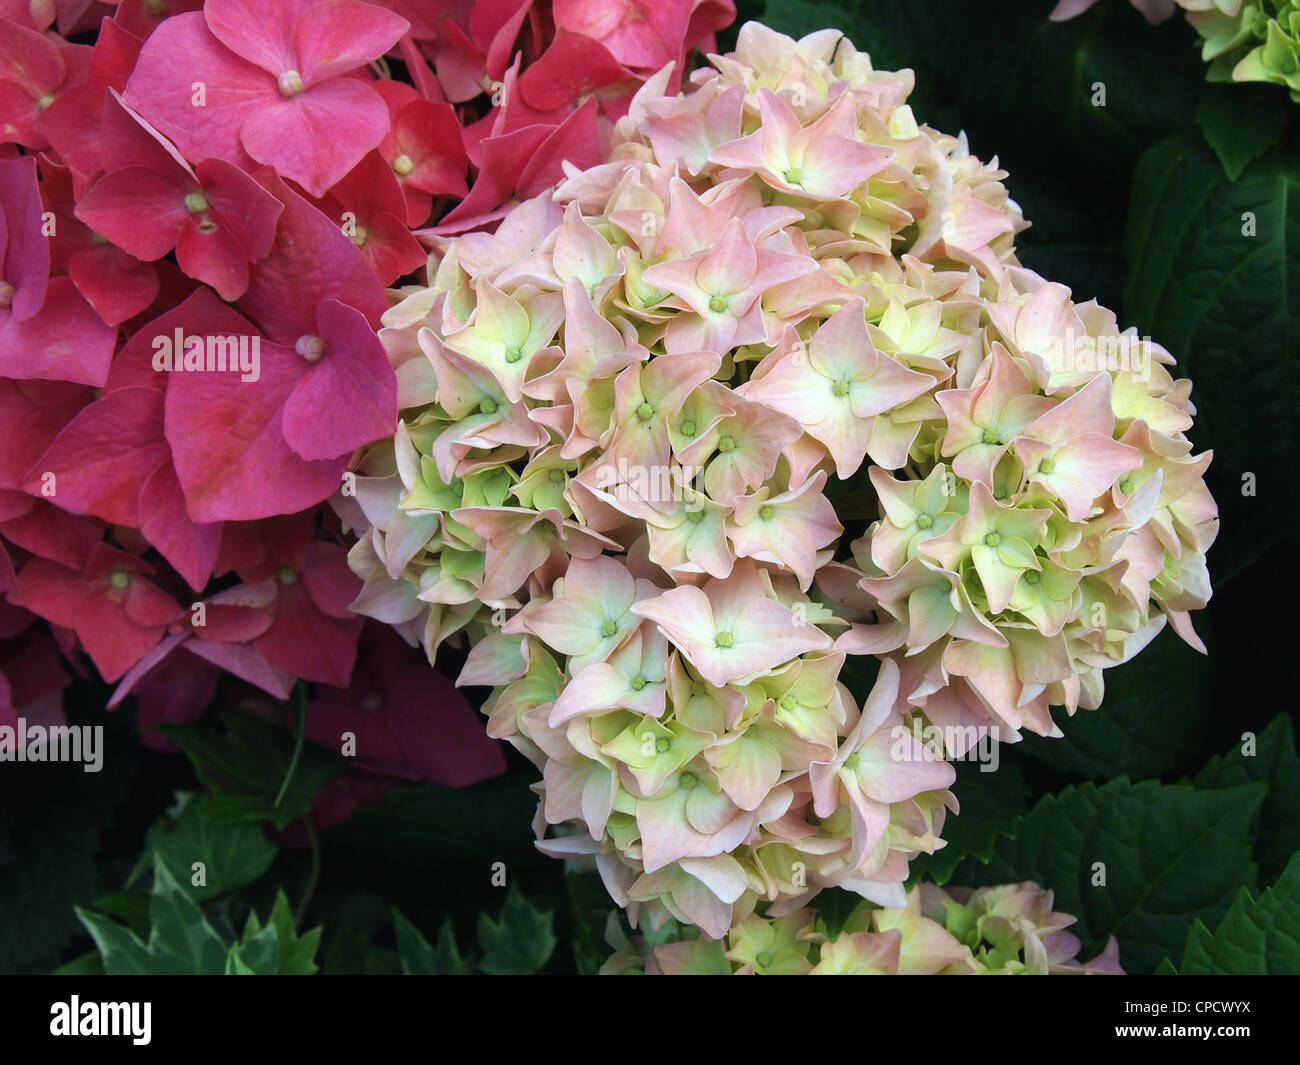 Close-up of Red and Pink Hydrangea flowers in garden - Stock Image